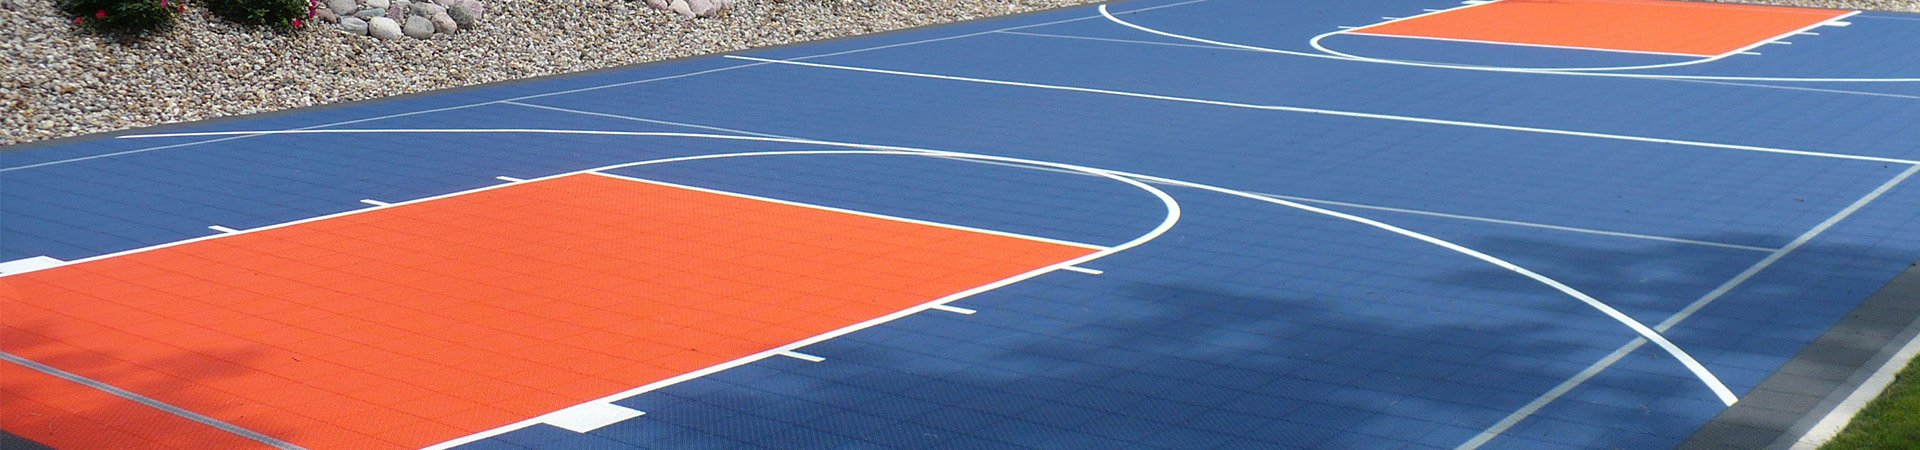 Versacourt Indoor Outdoor Backyard Basketball Courts with Backyard Basketball Court Ideas